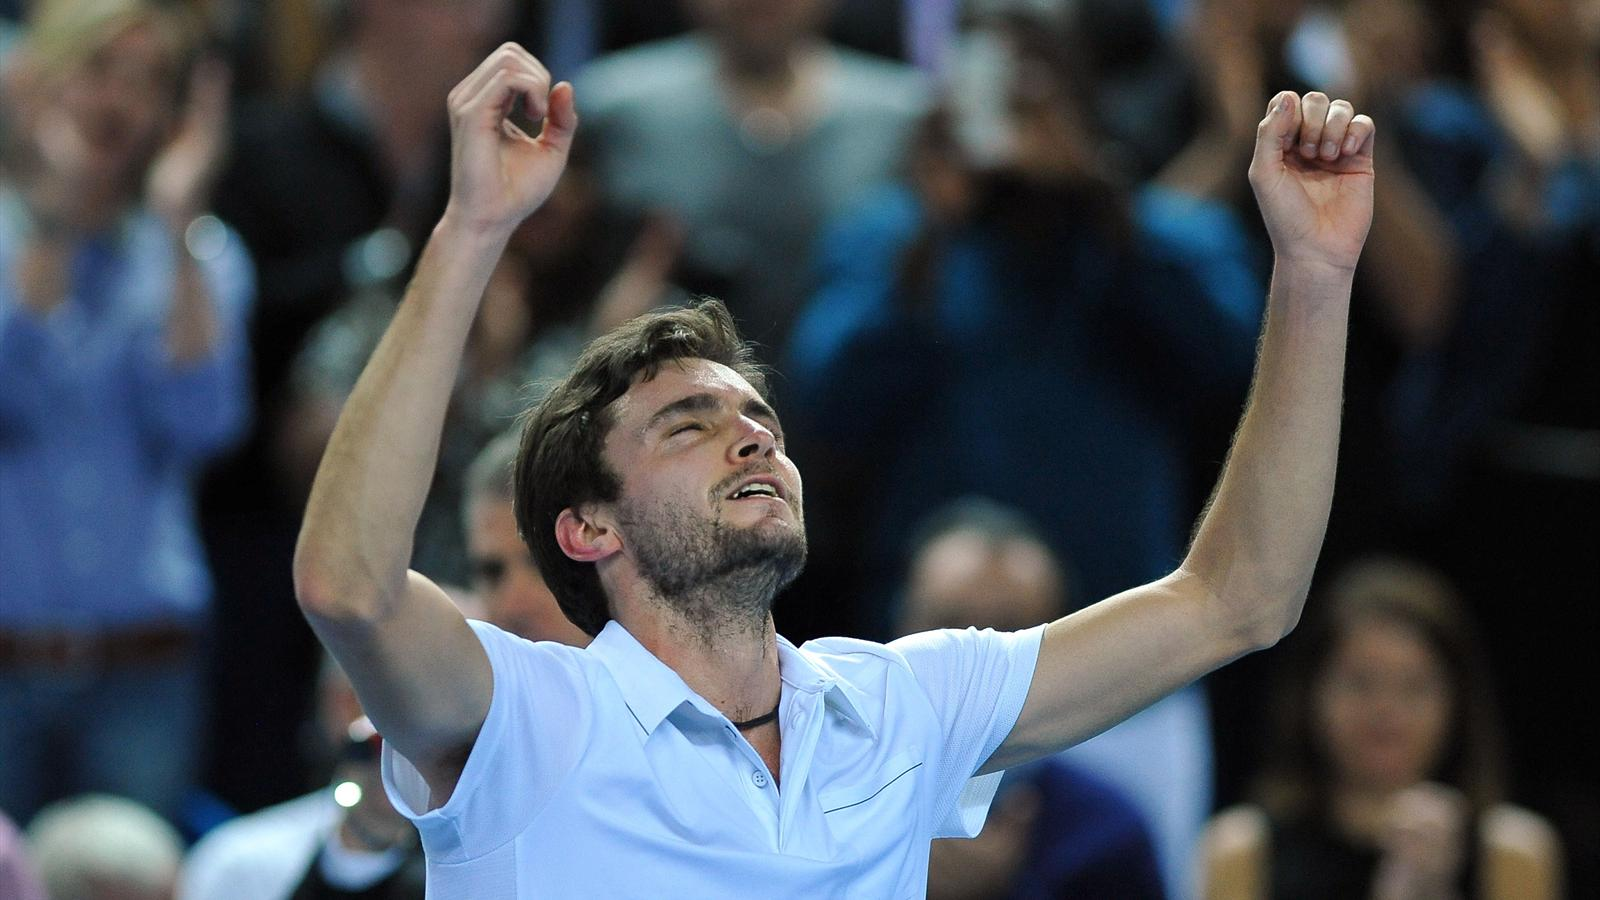 gilles simon wins open 13 title atp marseille tennis 2015